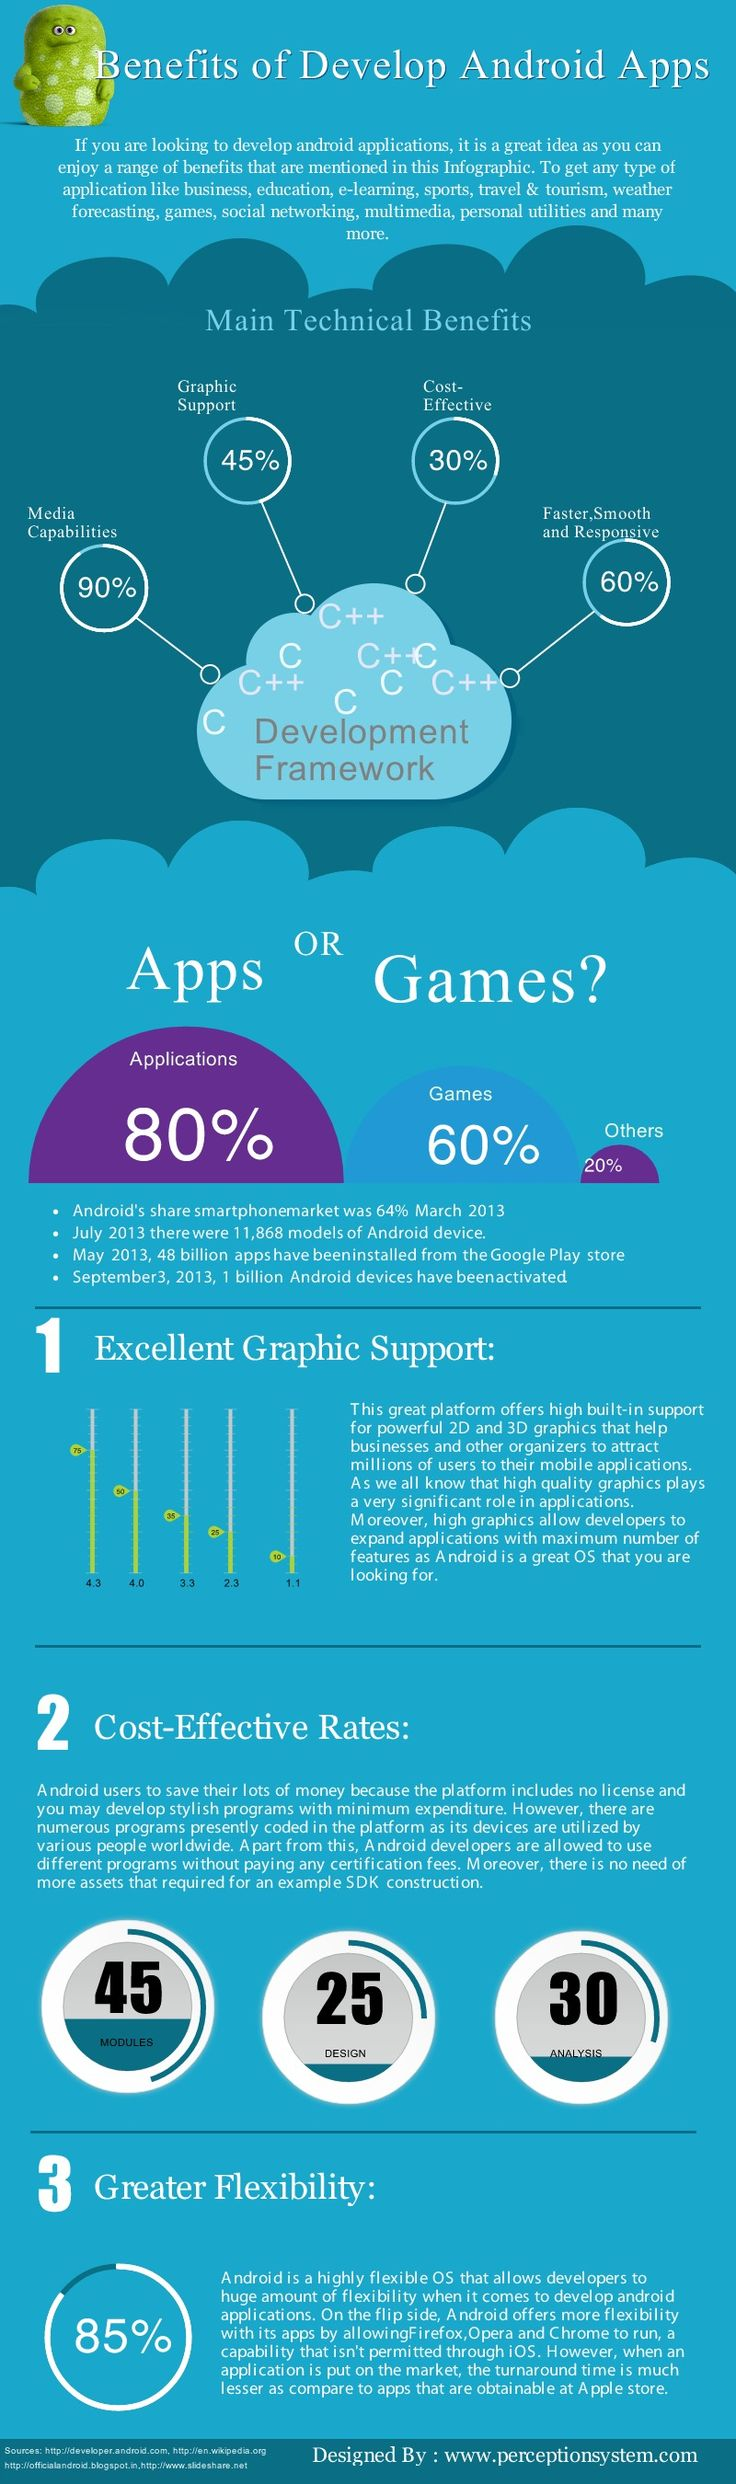 #INFOgraphic > Android Framework Benefits: With this graphic, guys from Perception System present their views regarding the major benefits for app developers who are working on Android development framework.  > http://infographicsmania.com/android-framework-benefits/?utm_source=Pinterest&utm_medium=INFOGRAPHICSMANIA&utm_campaign=SNAP